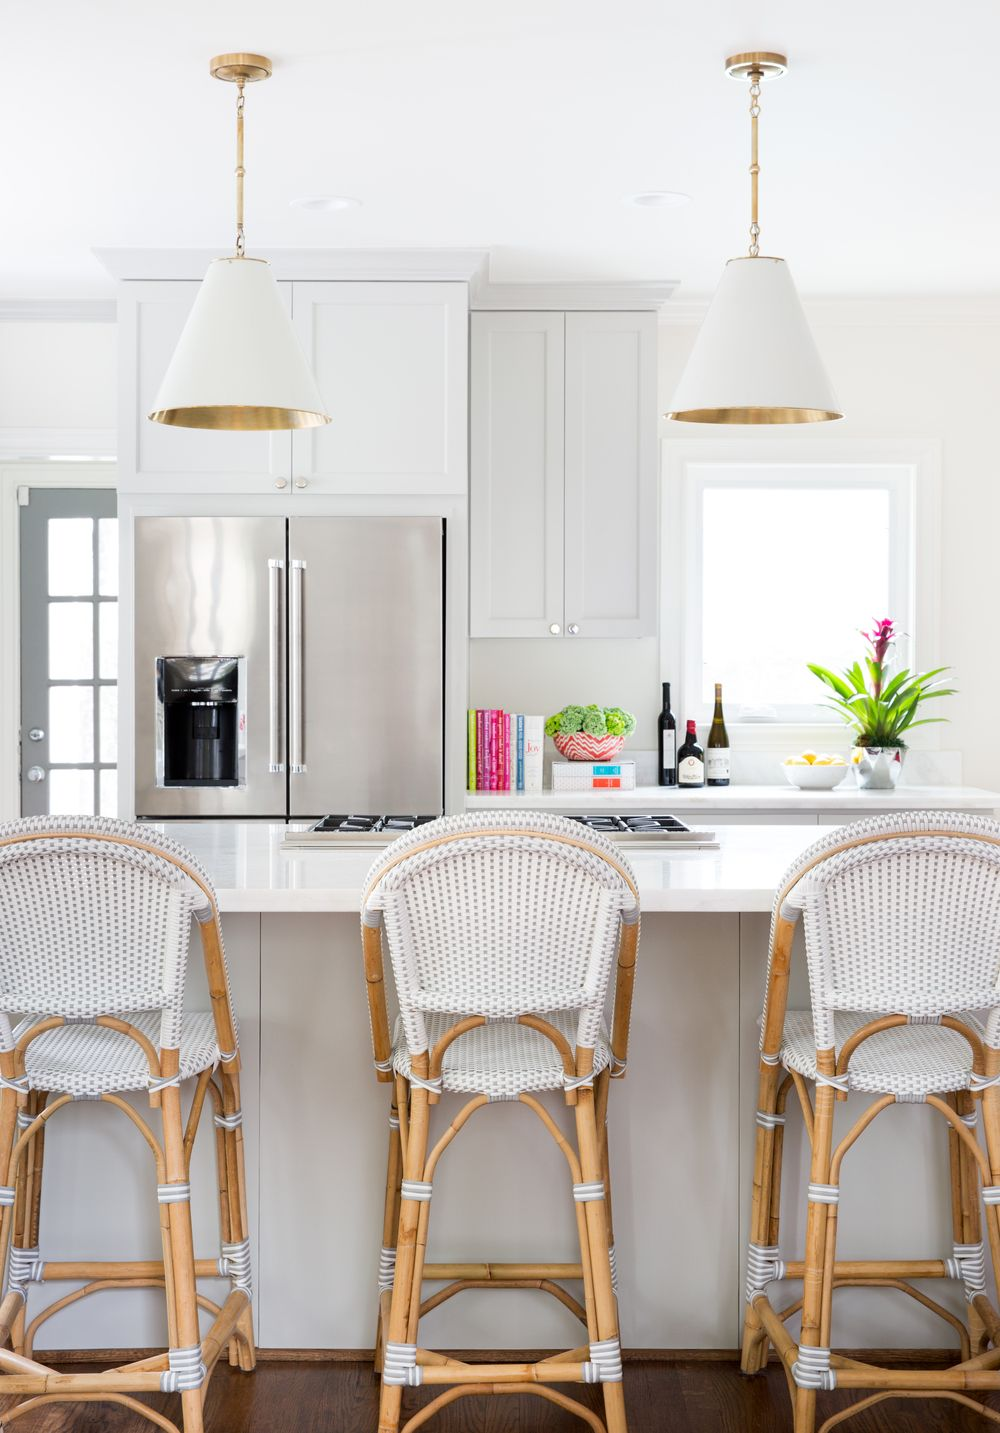 12 Best French Bistro Chairs For Your Home   Kitchen Remodel     White Kitchen French Bistro Chairs via Jennifer Barron Interiors